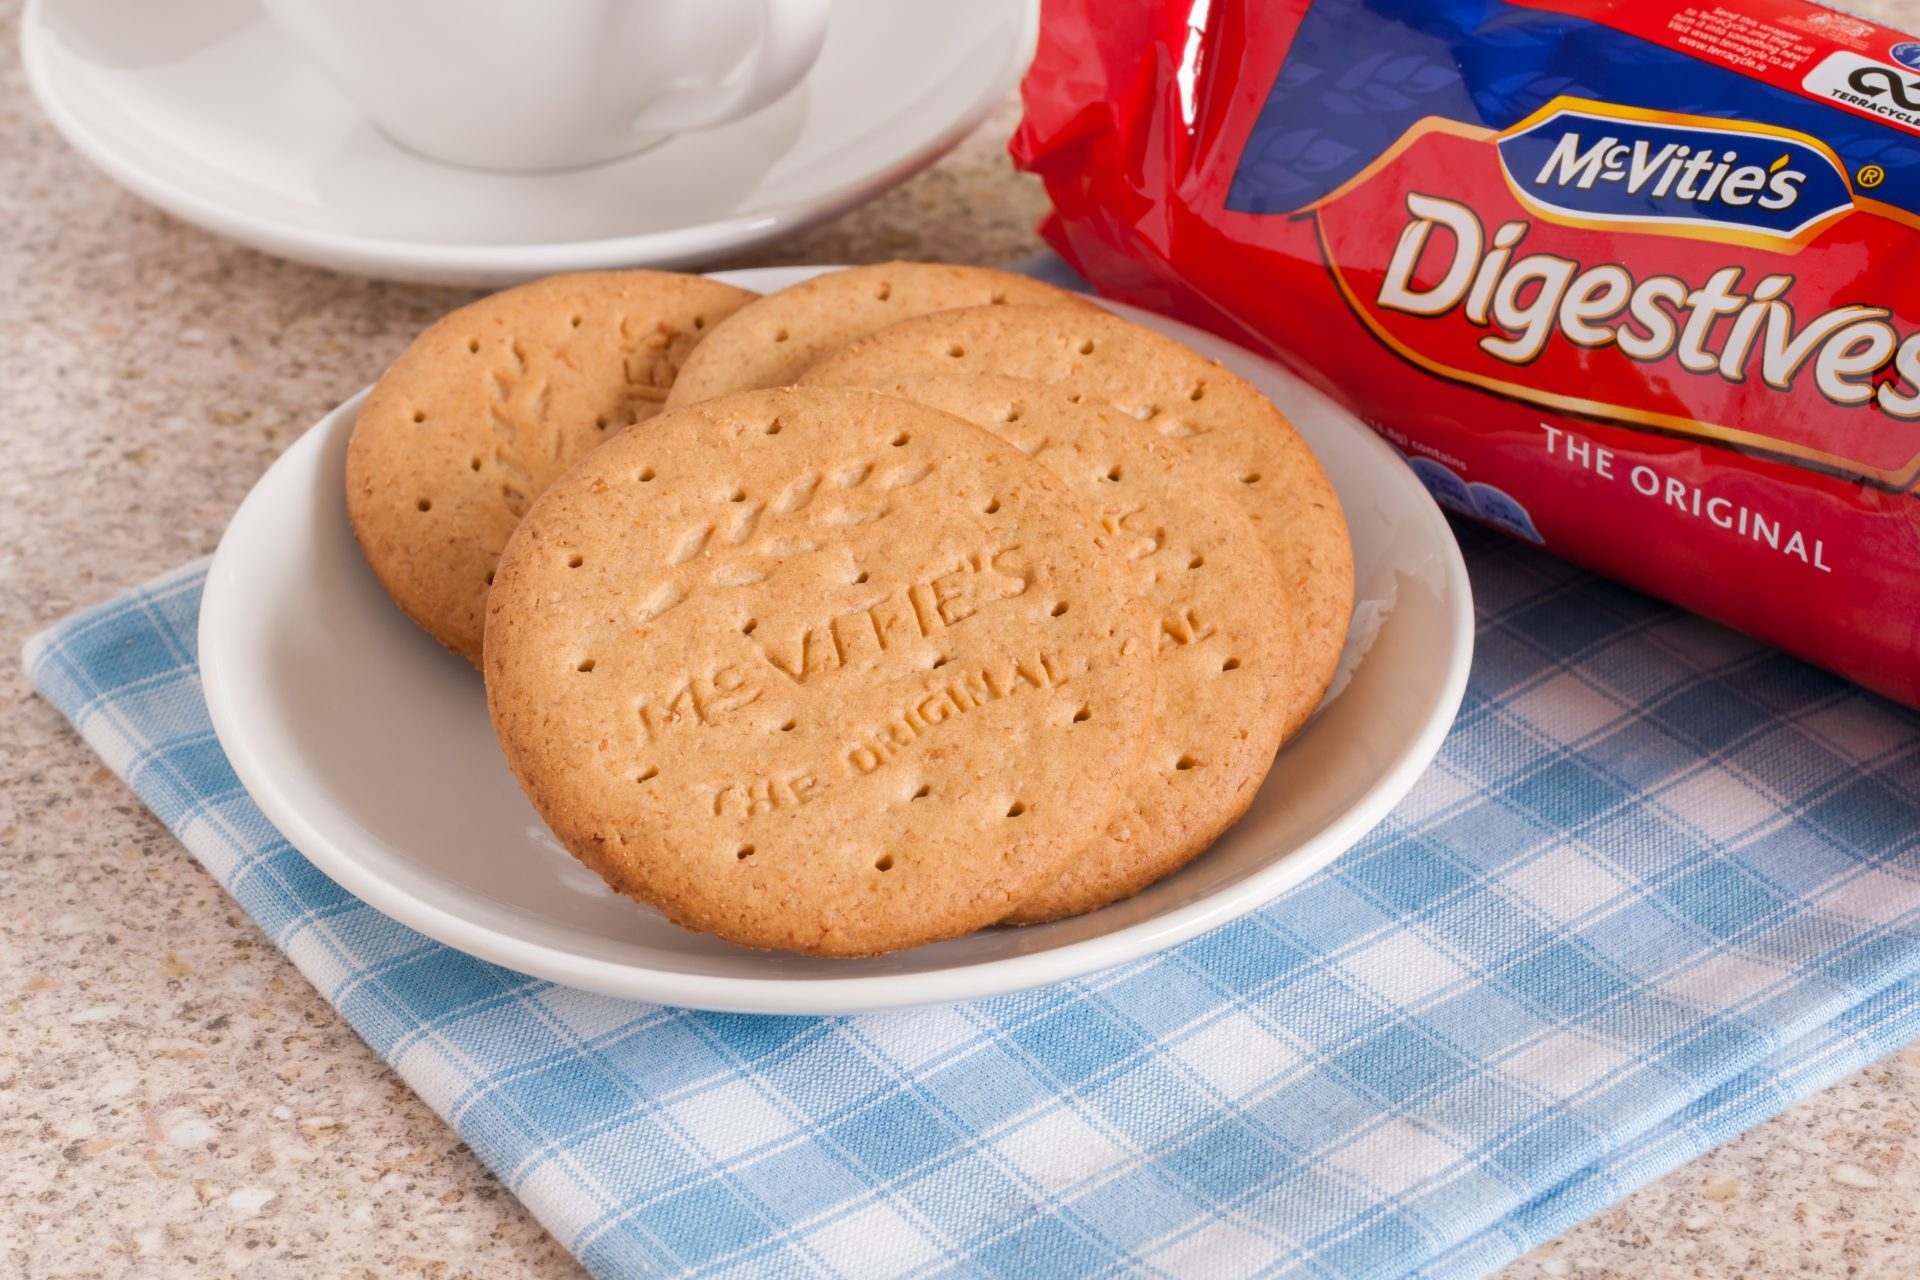 OmPrompt | McVitie's biscuits on a plate